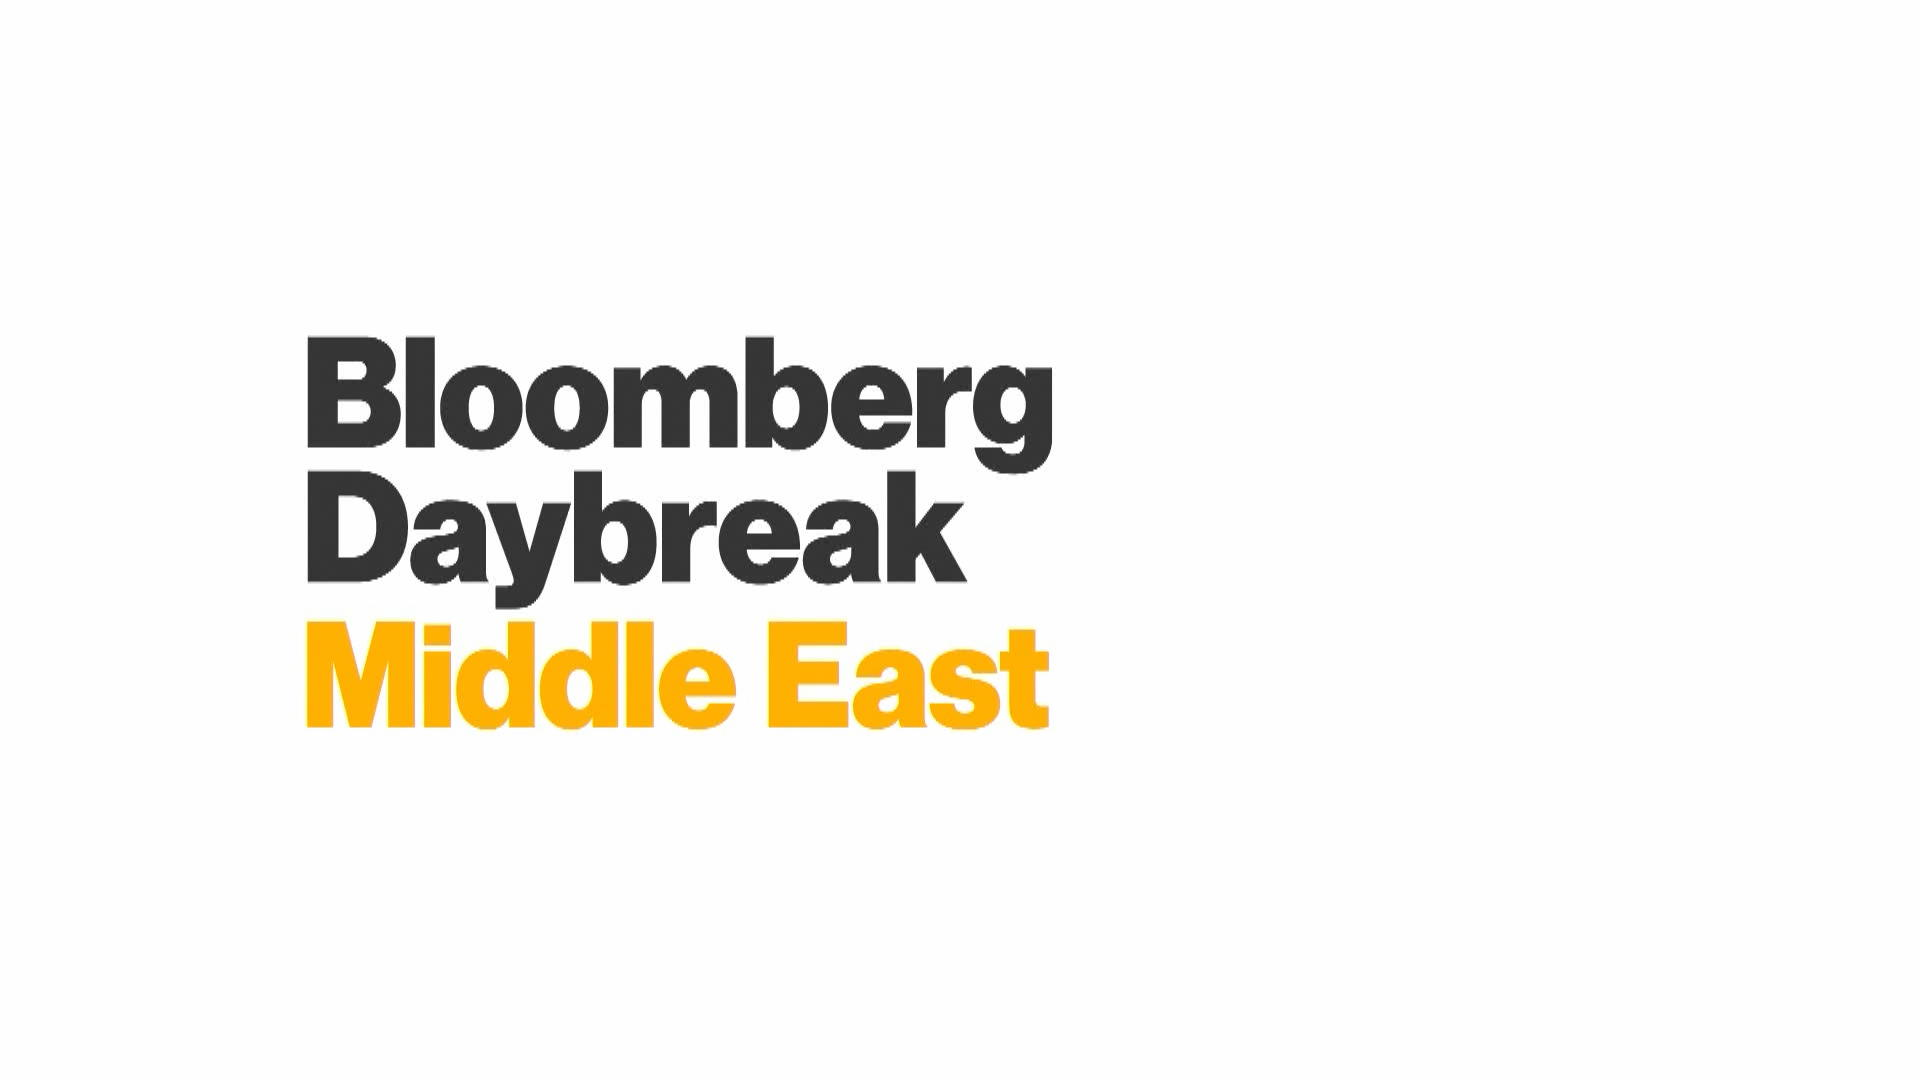 https://www bloomberg com/news/videos/2018-07-19/-bloomberg